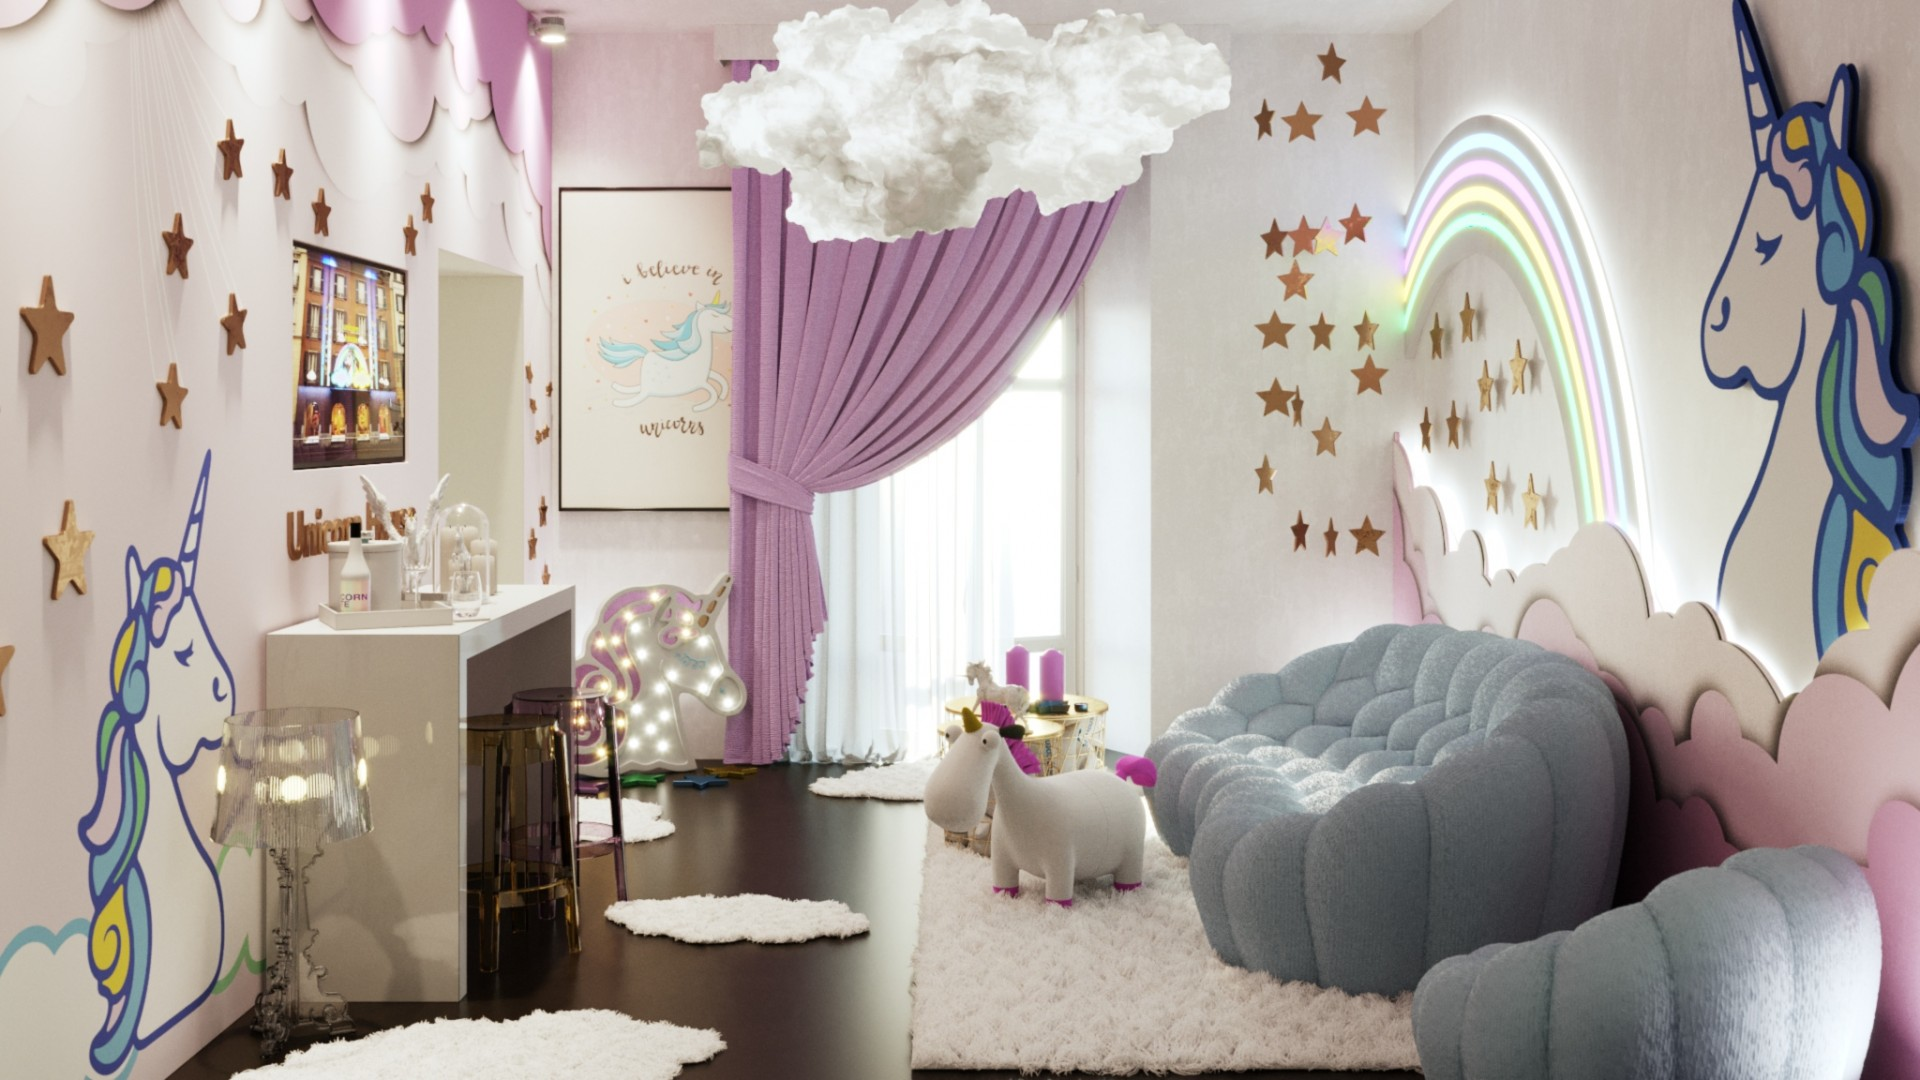 Booking.com Unicorn House 4 (1)